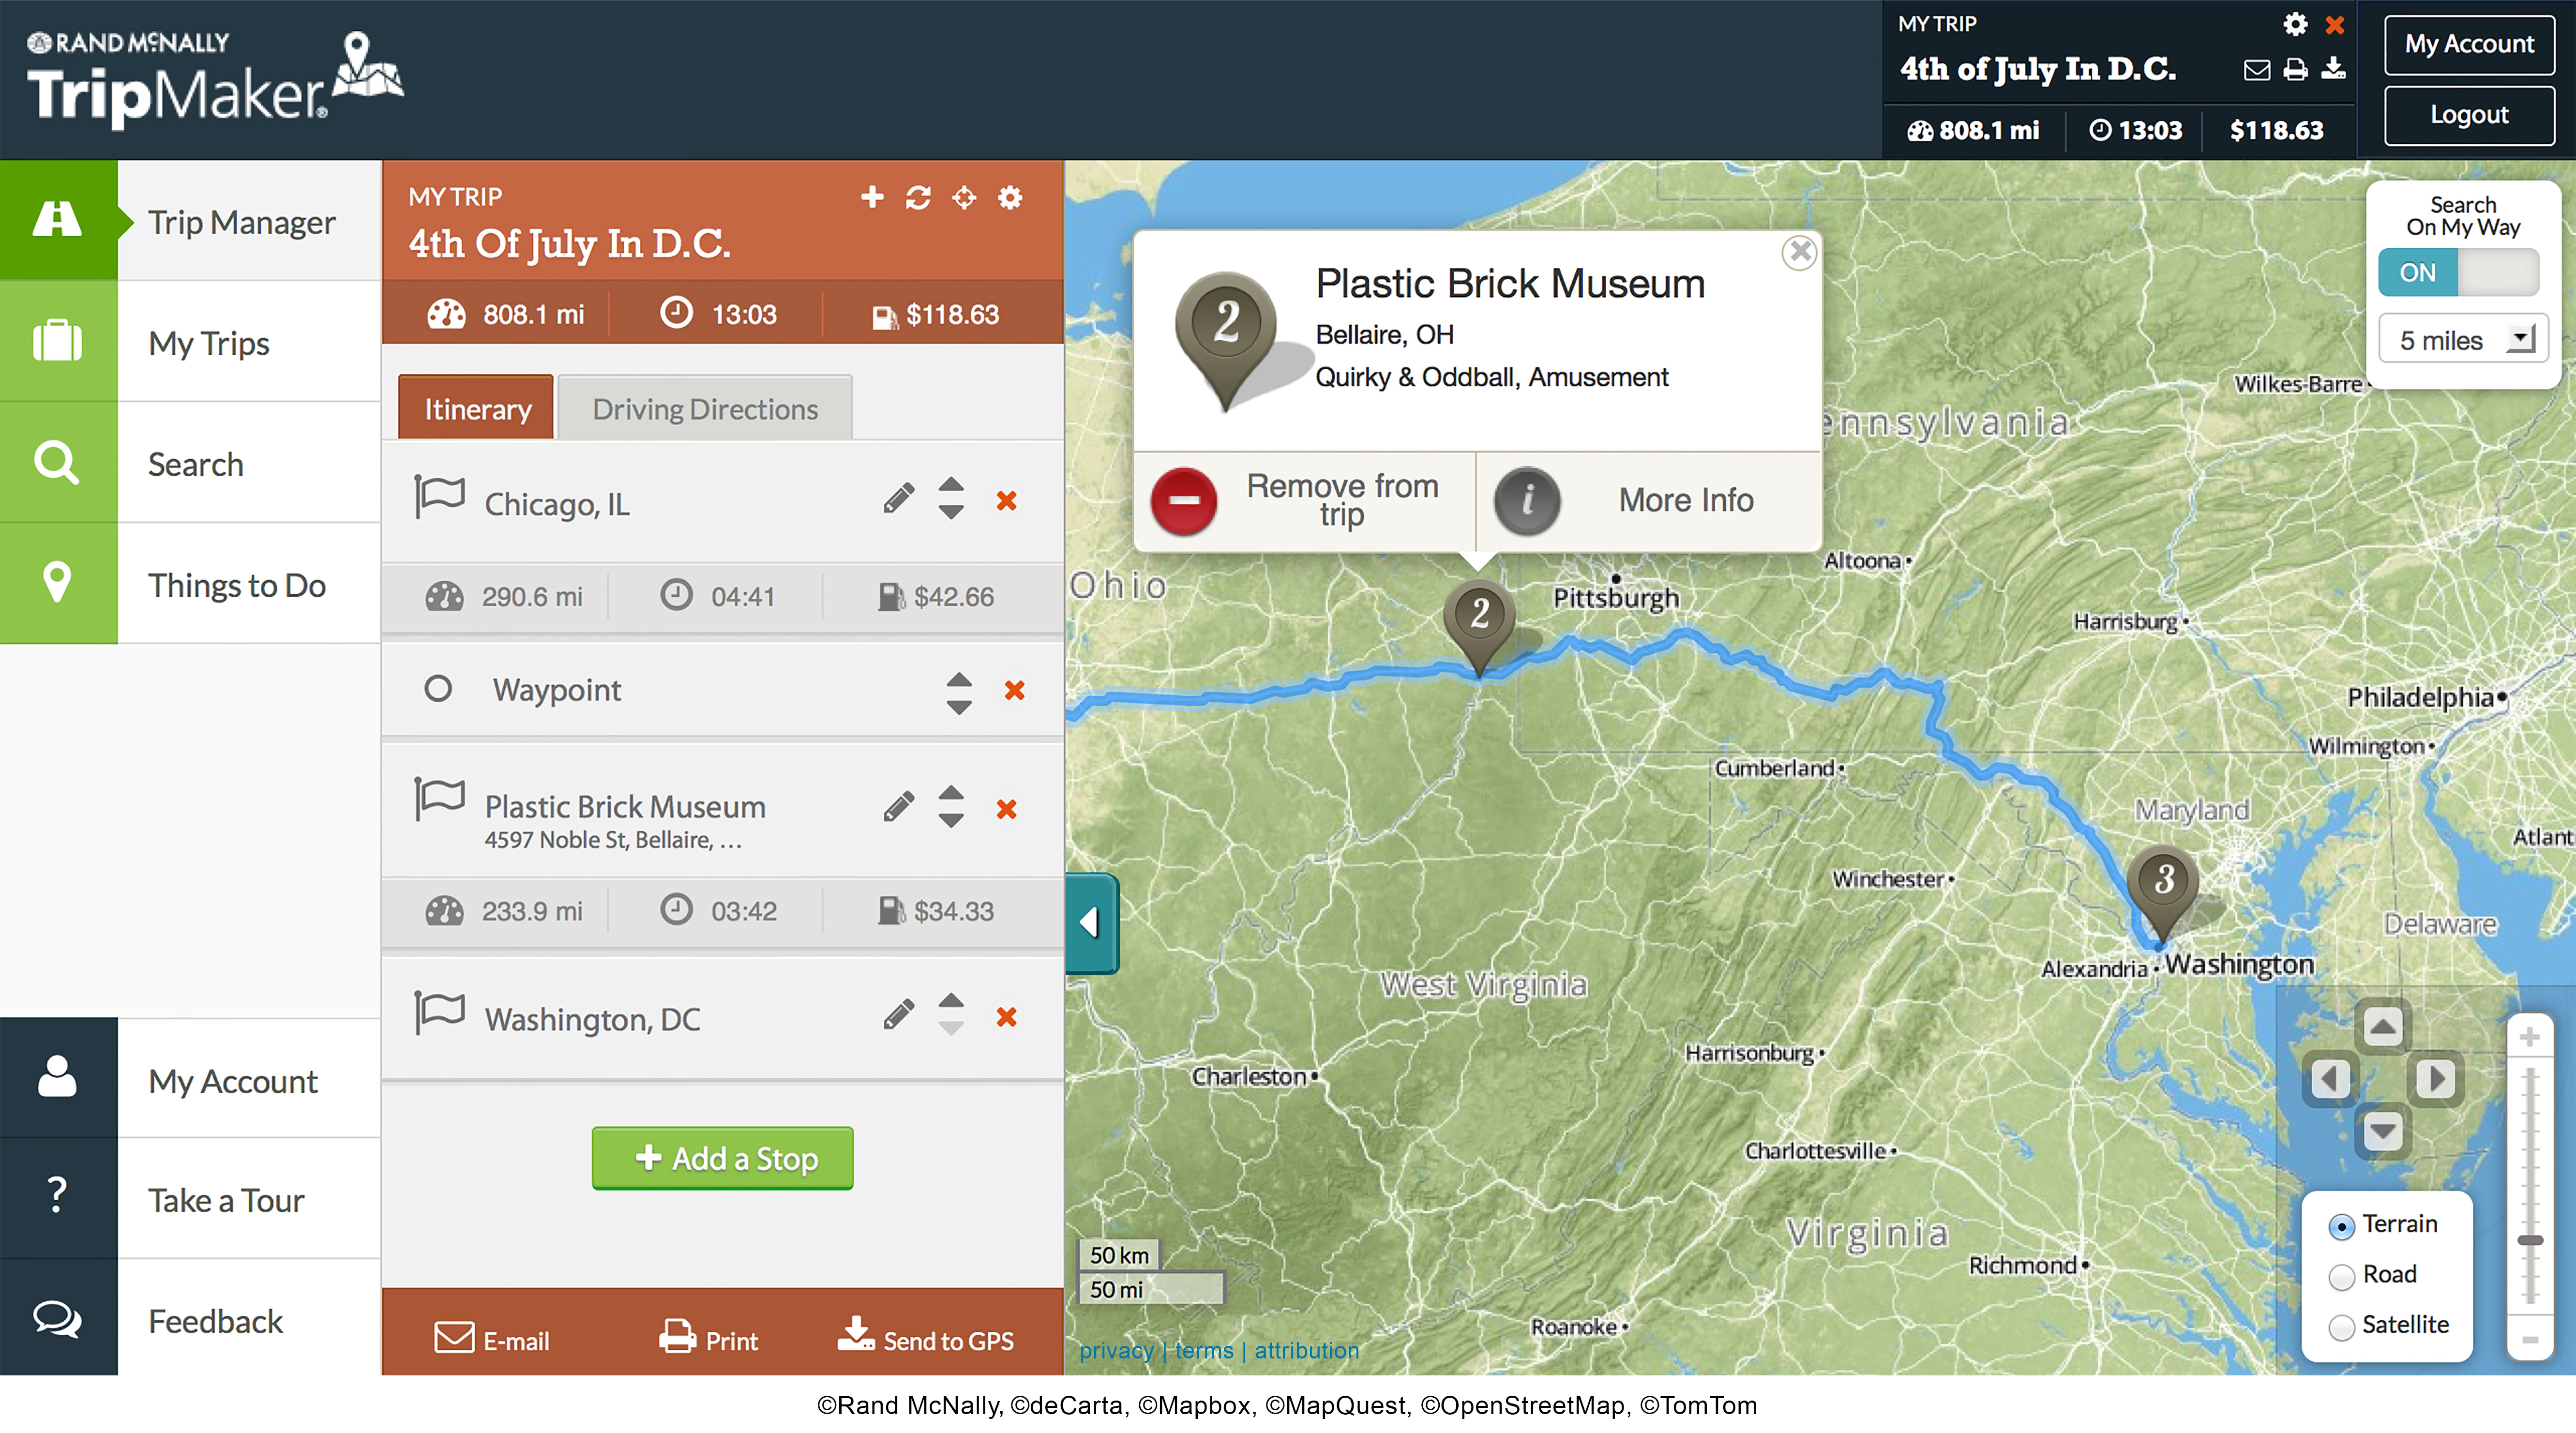 Rand McNally Launches AllNew Trip Planning Tool TripMaker – Travel Itinerary Map Maker